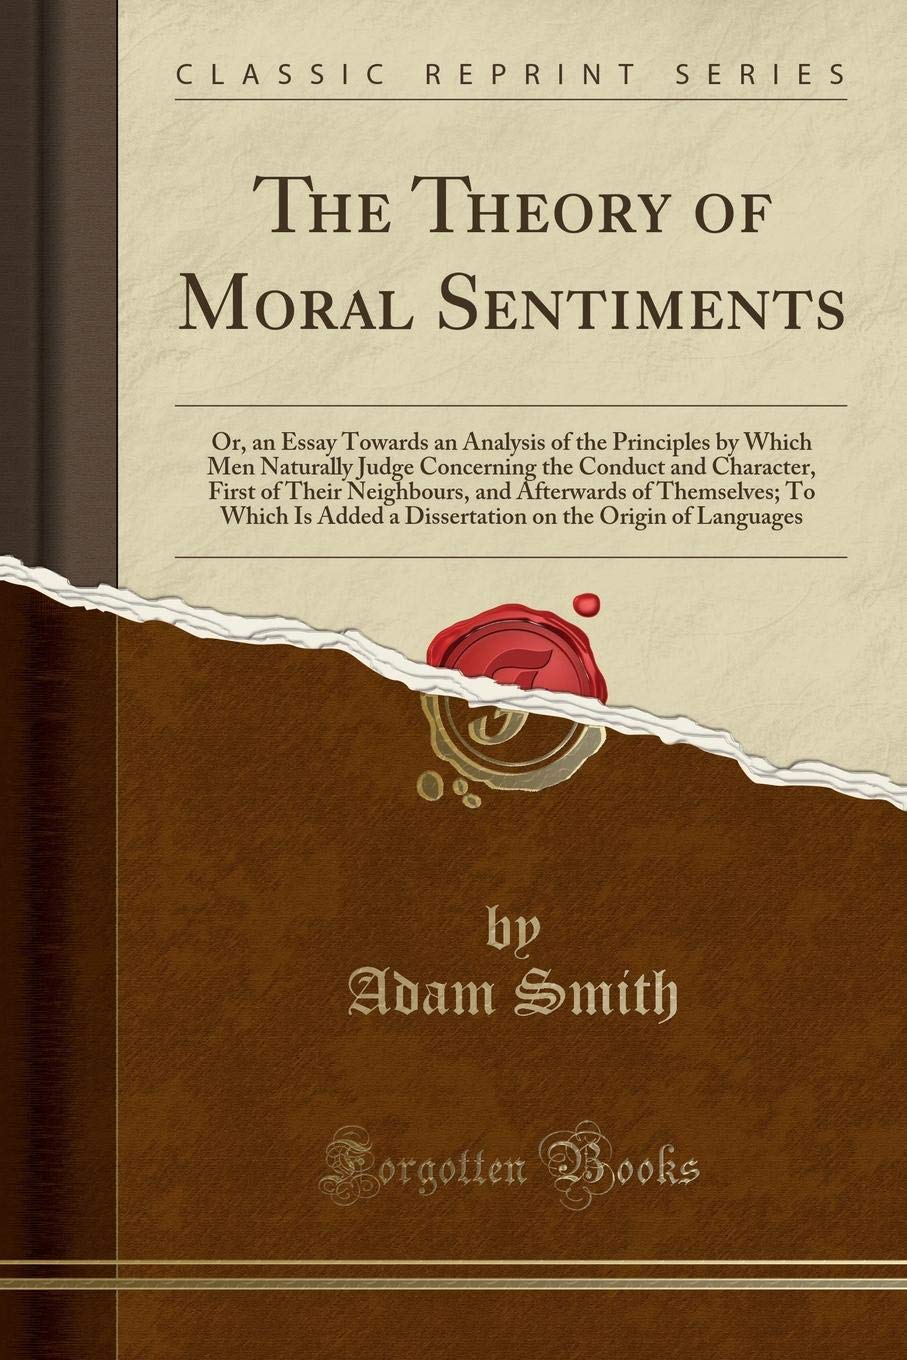 The Theory Of Moral Sentiments Or An Essay Towards An Analysis Of  The Theory Of Moral Sentiments Or An Essay Towards An Analysis Of The  Principles By Which Men Naturally Judge Concerning The Conduct And  Character  Good High School Essay Topics also Essay On Modern Science  Good Health Essay